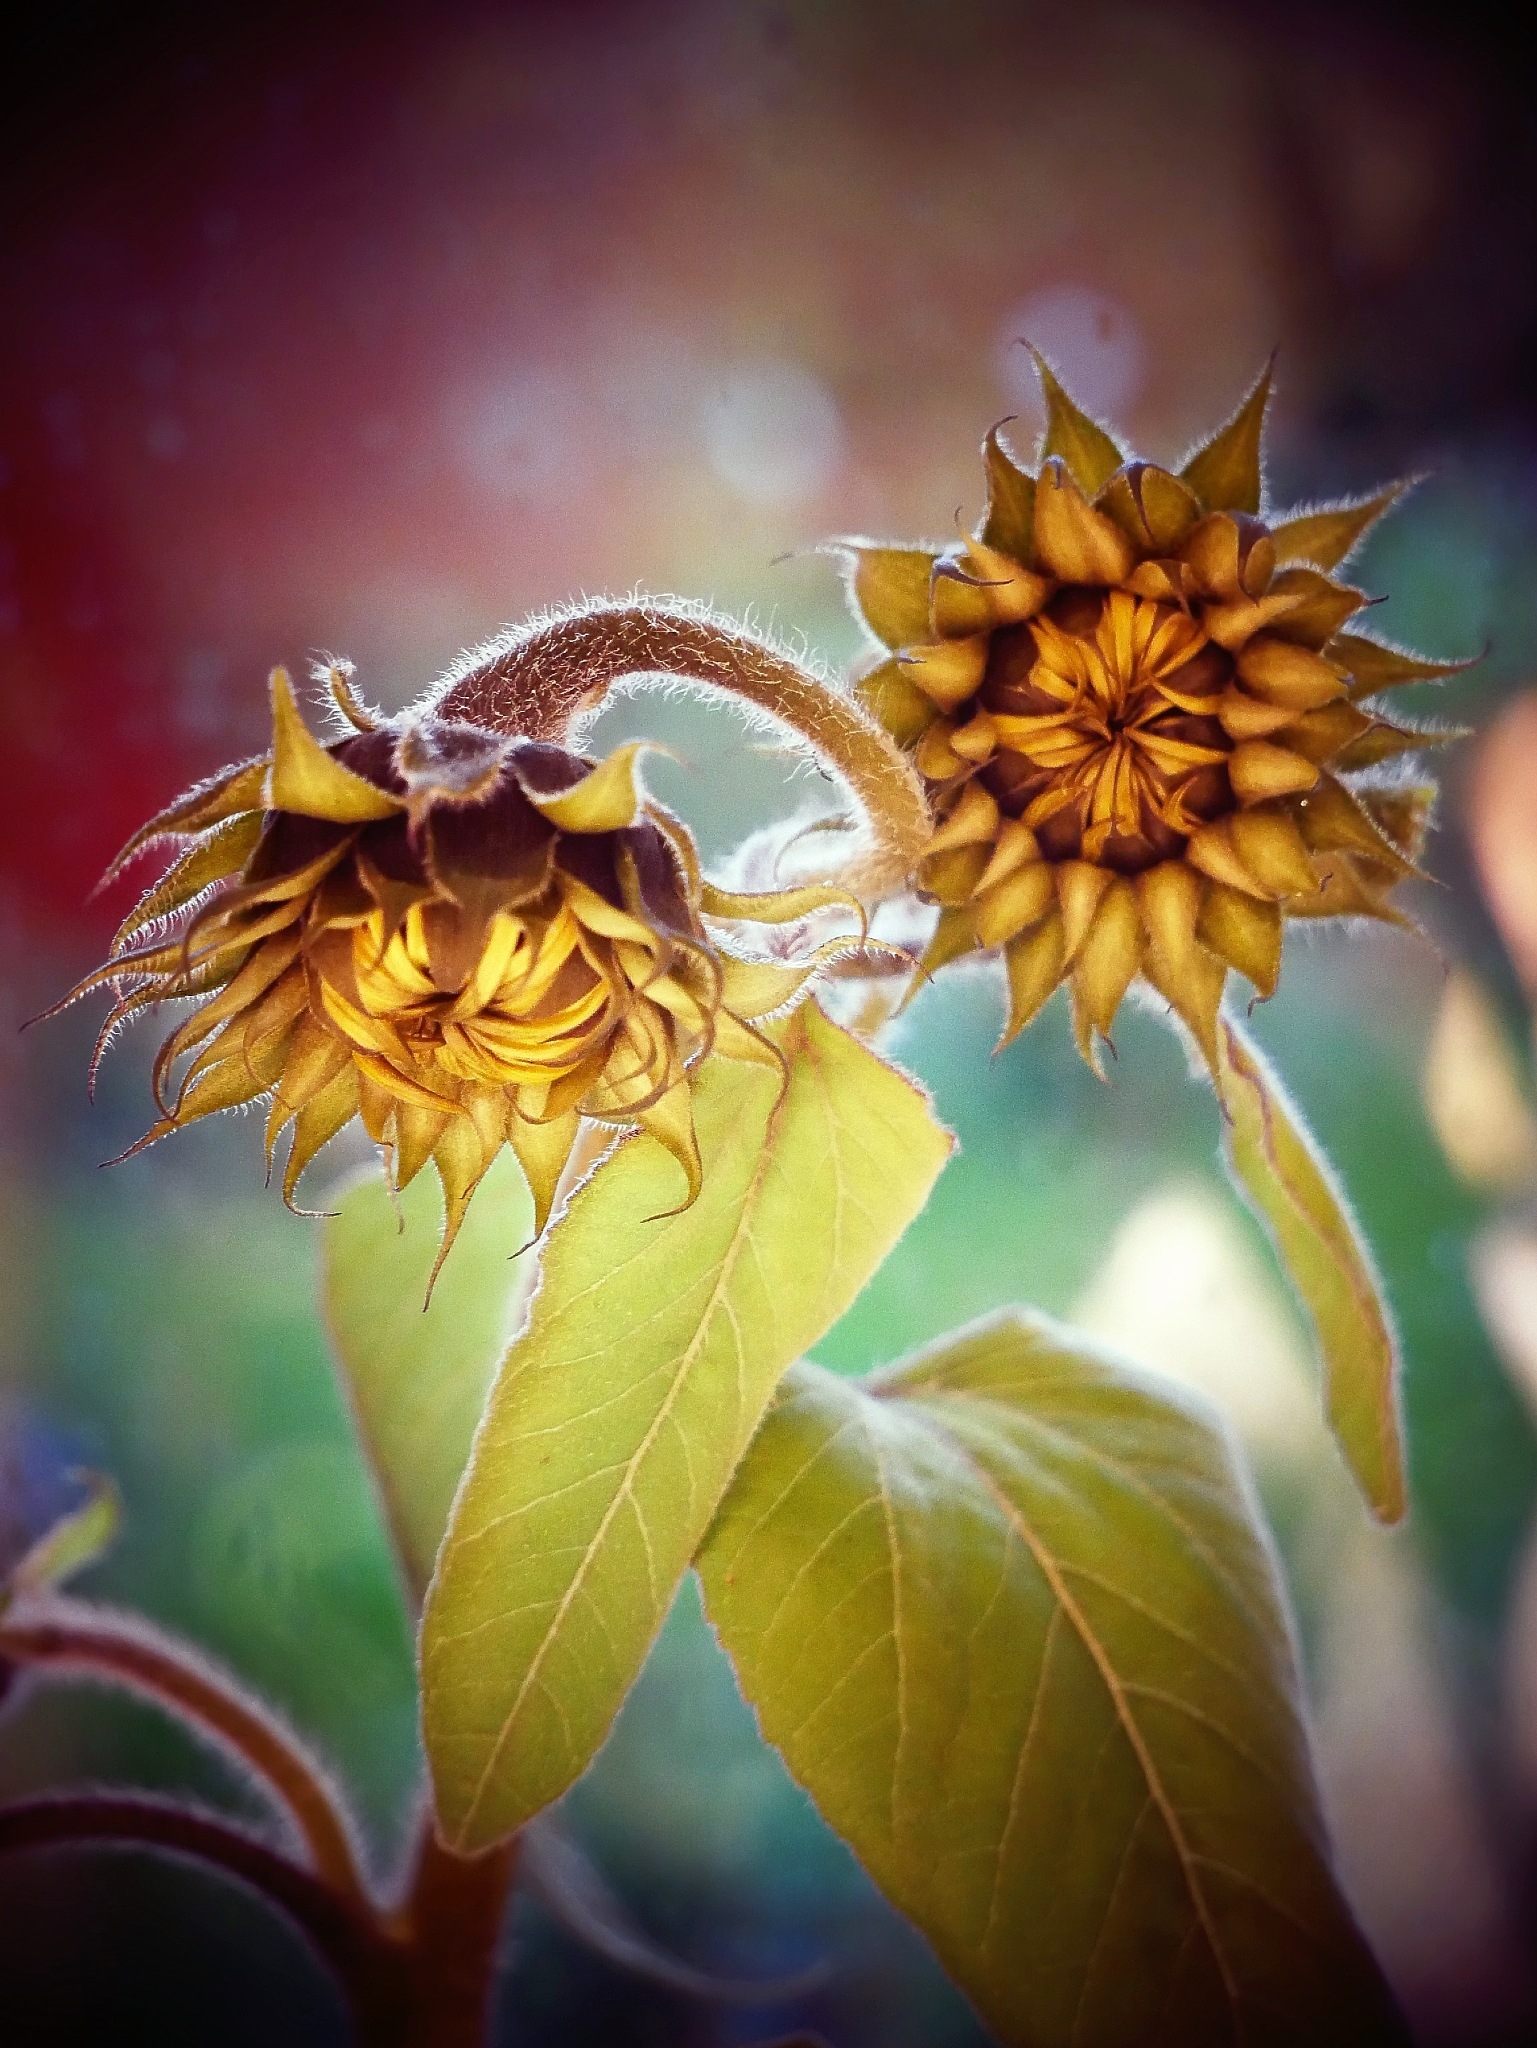 Small sunflowers in the garden today! by Cicki Jarneberg